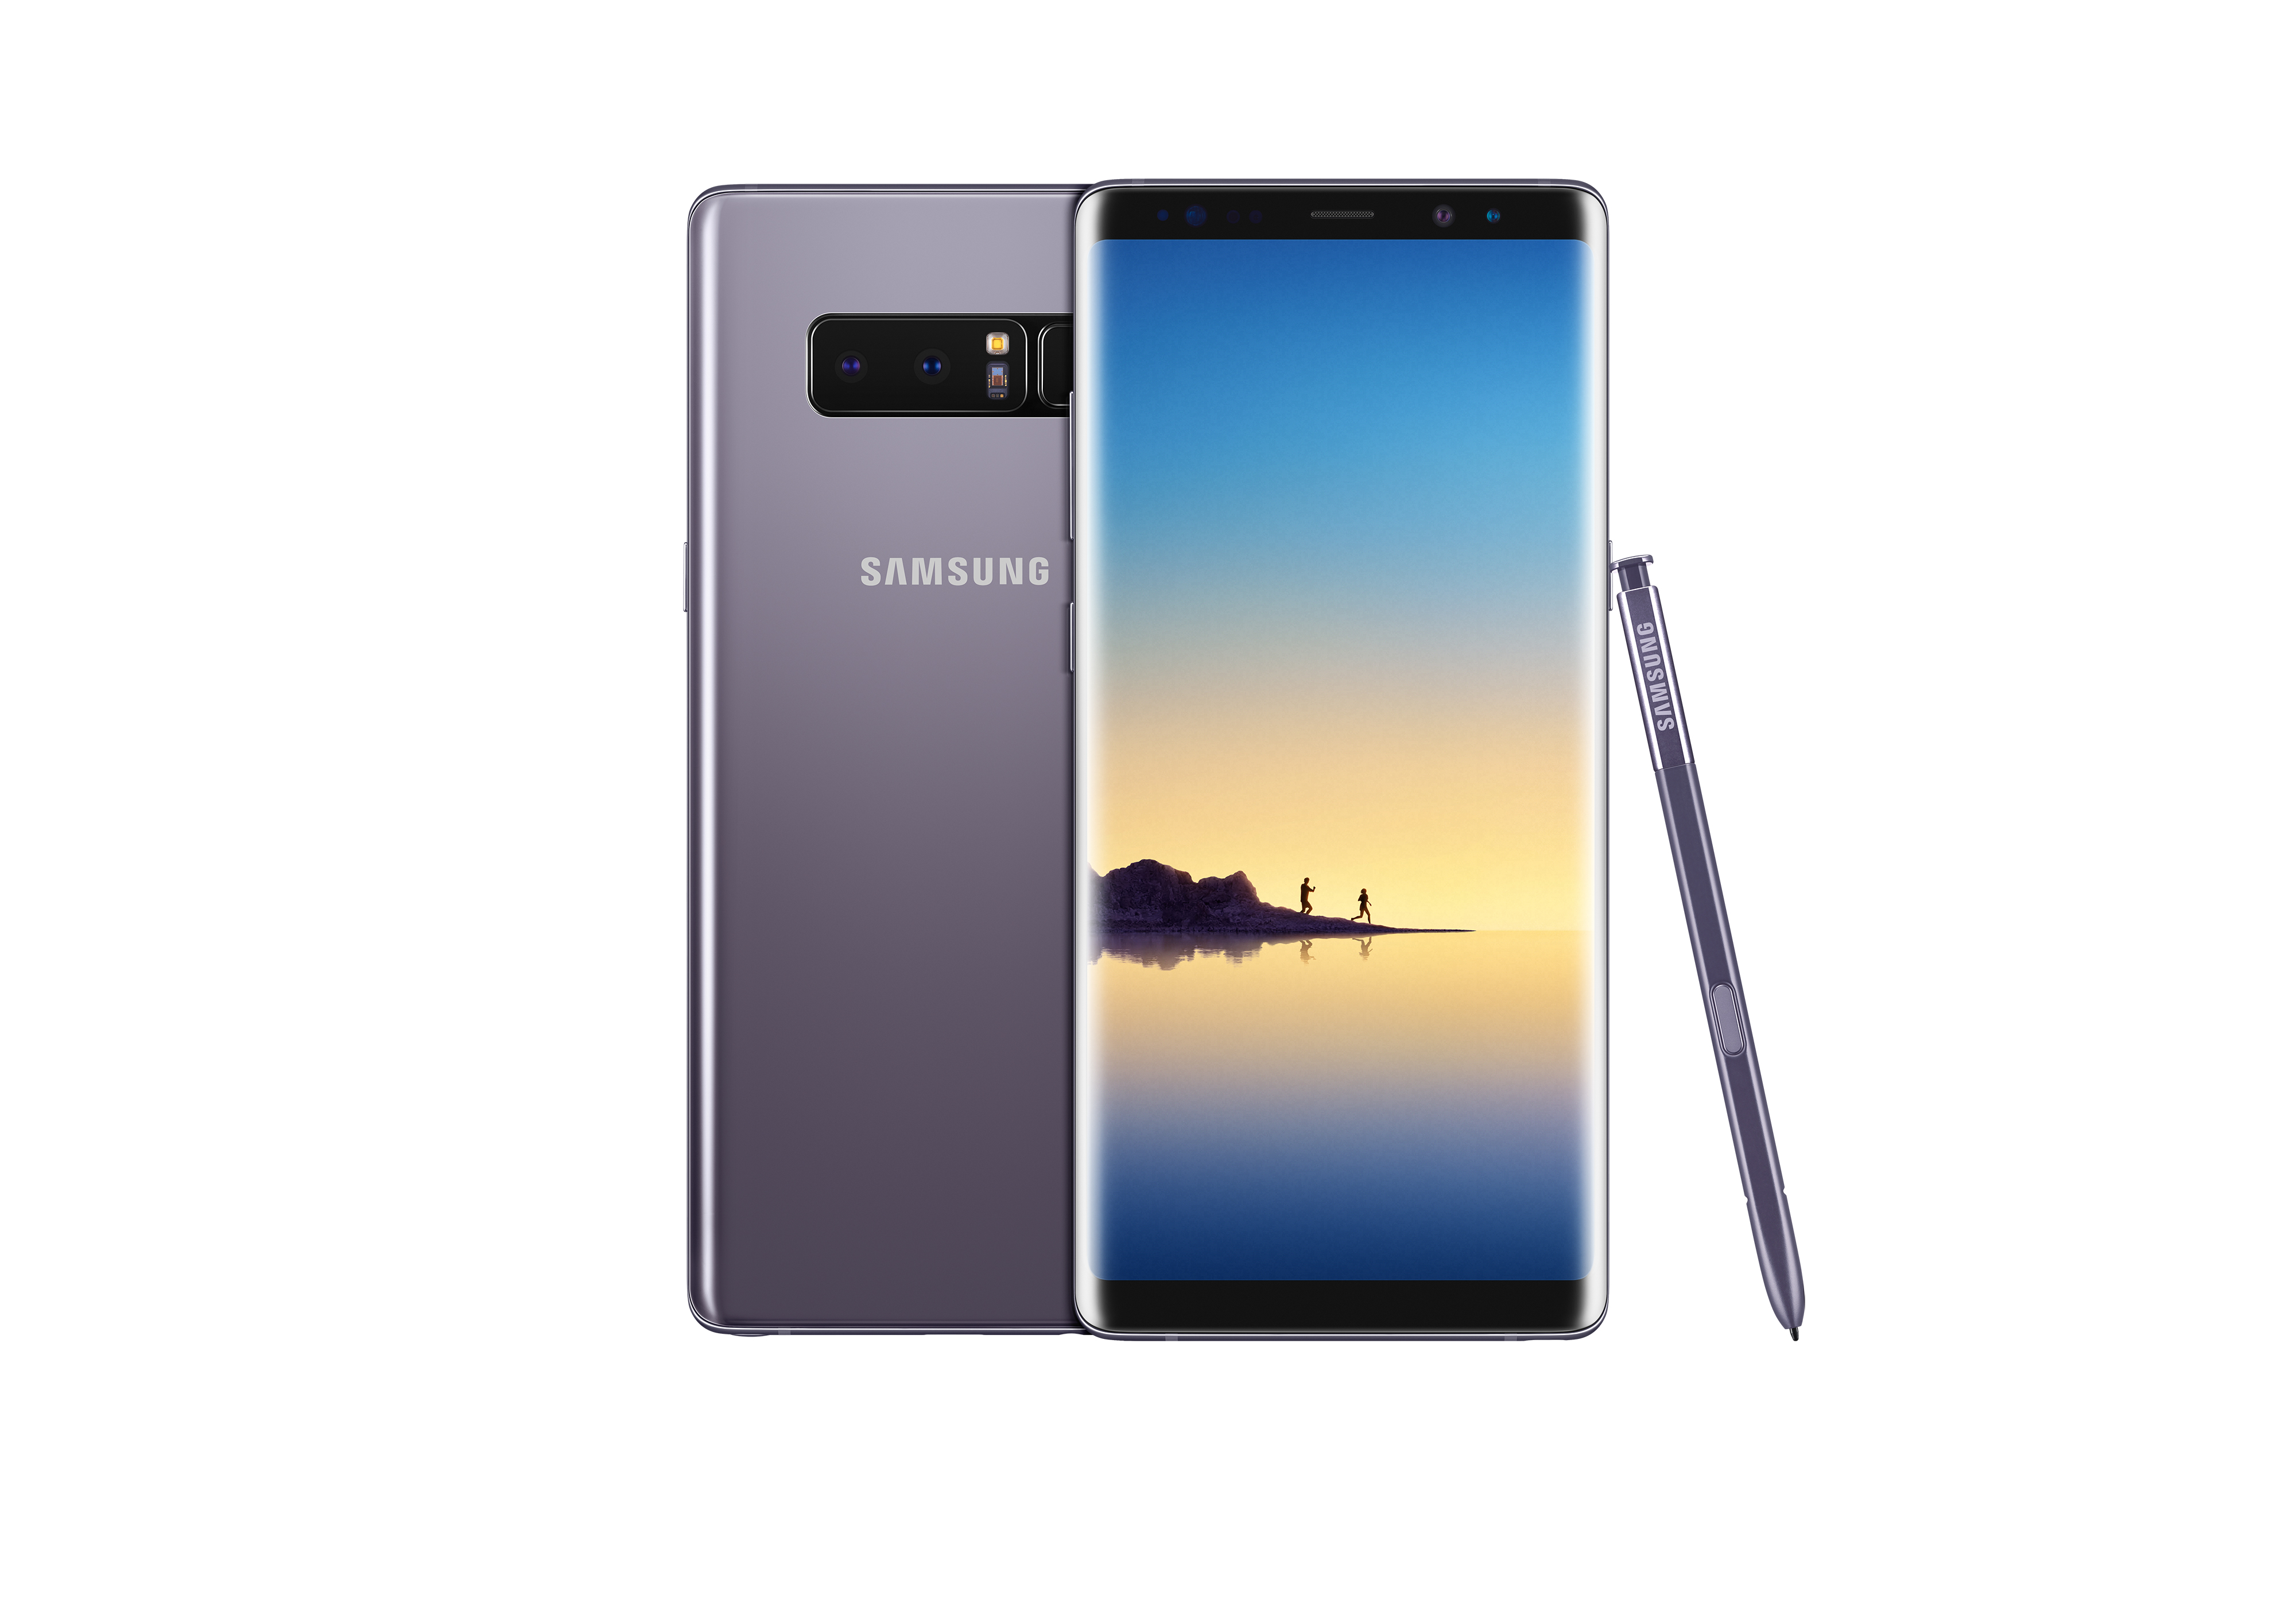 Galaxy Note8 in Orchid Gray.